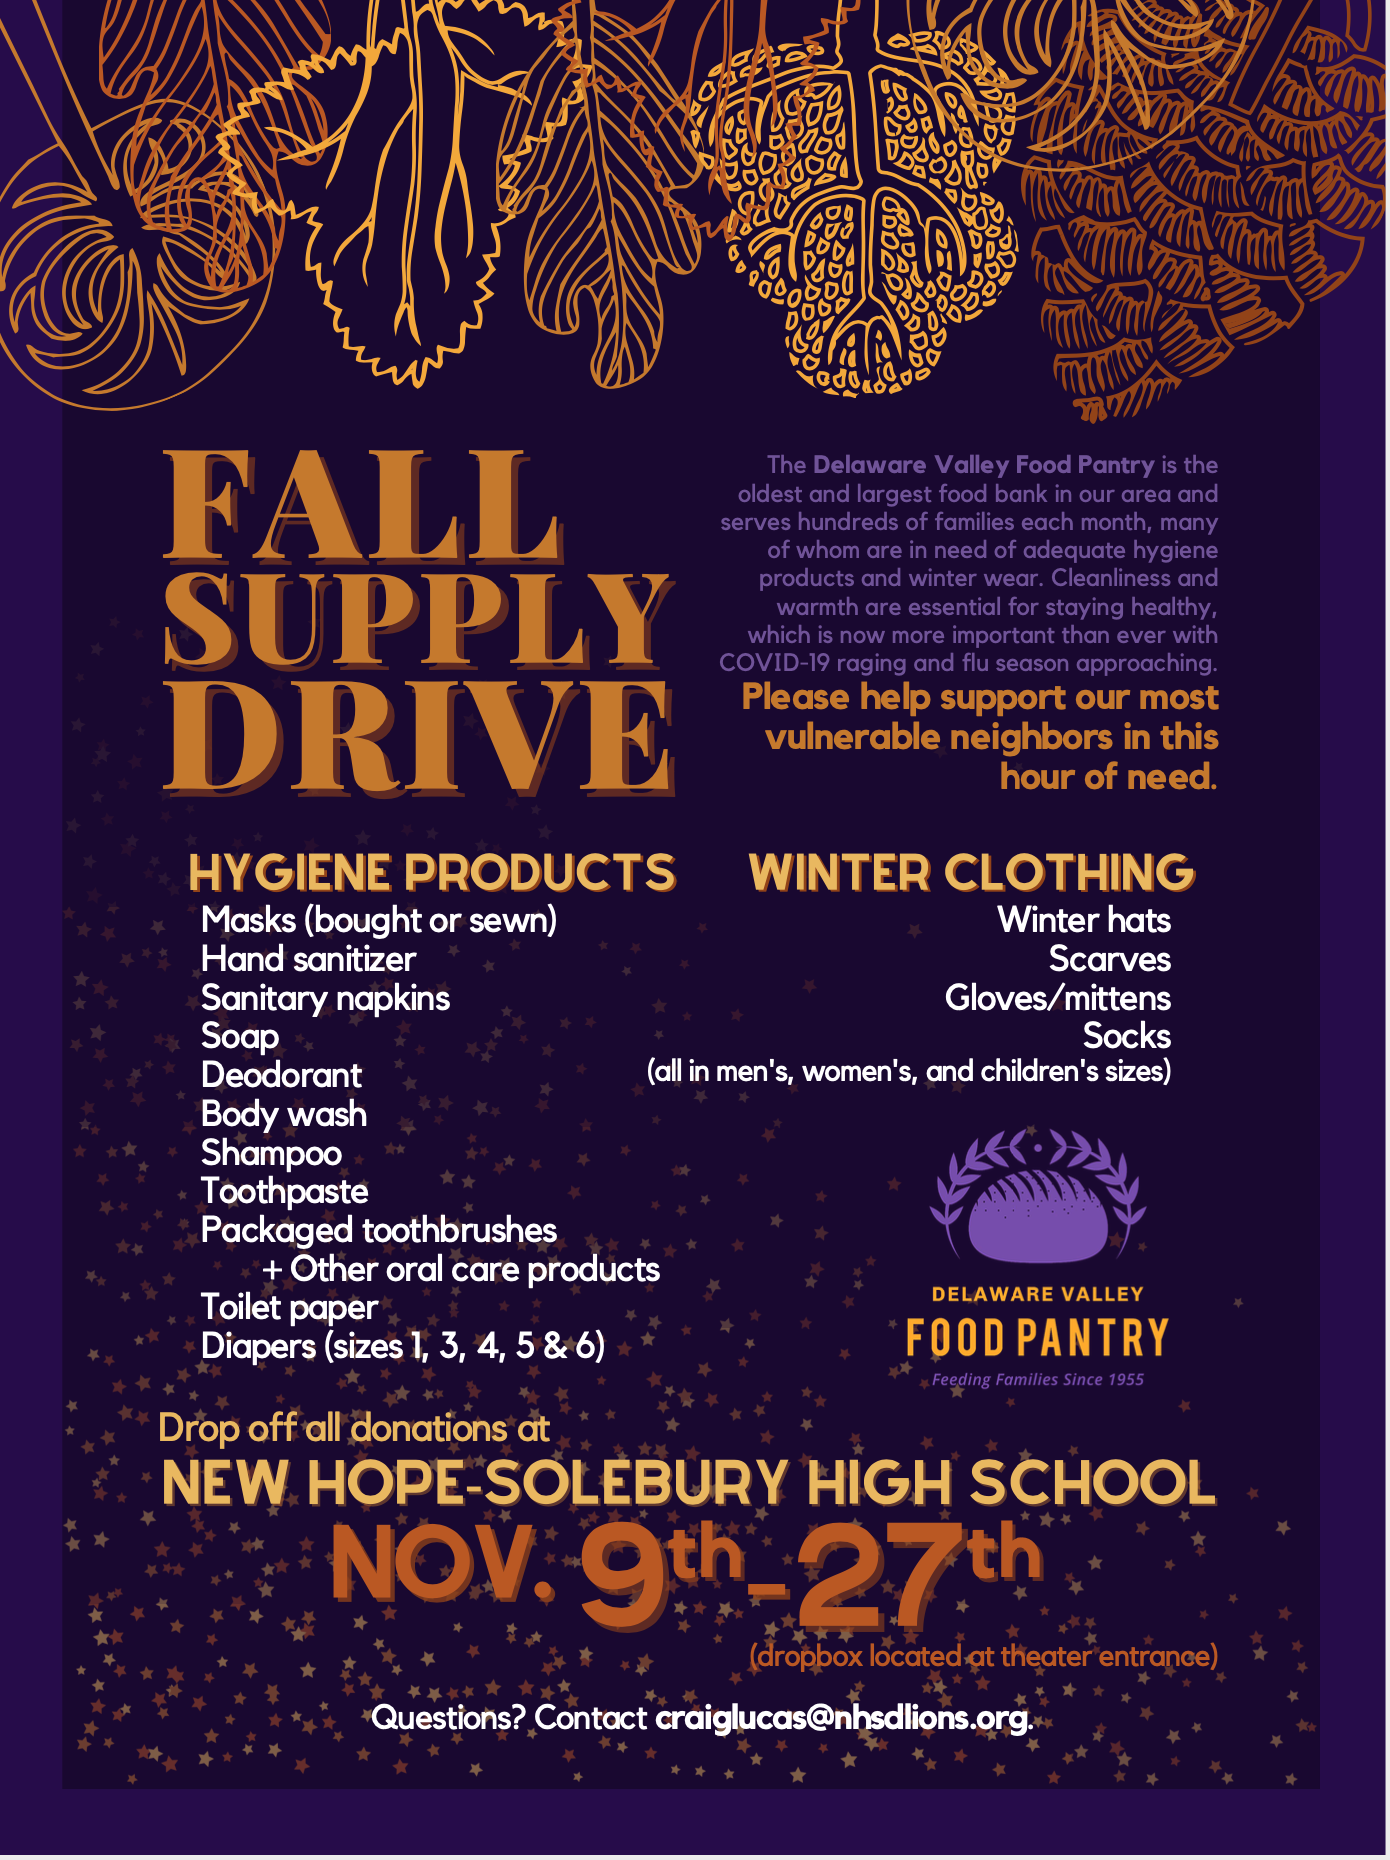 Fall Supply Drive